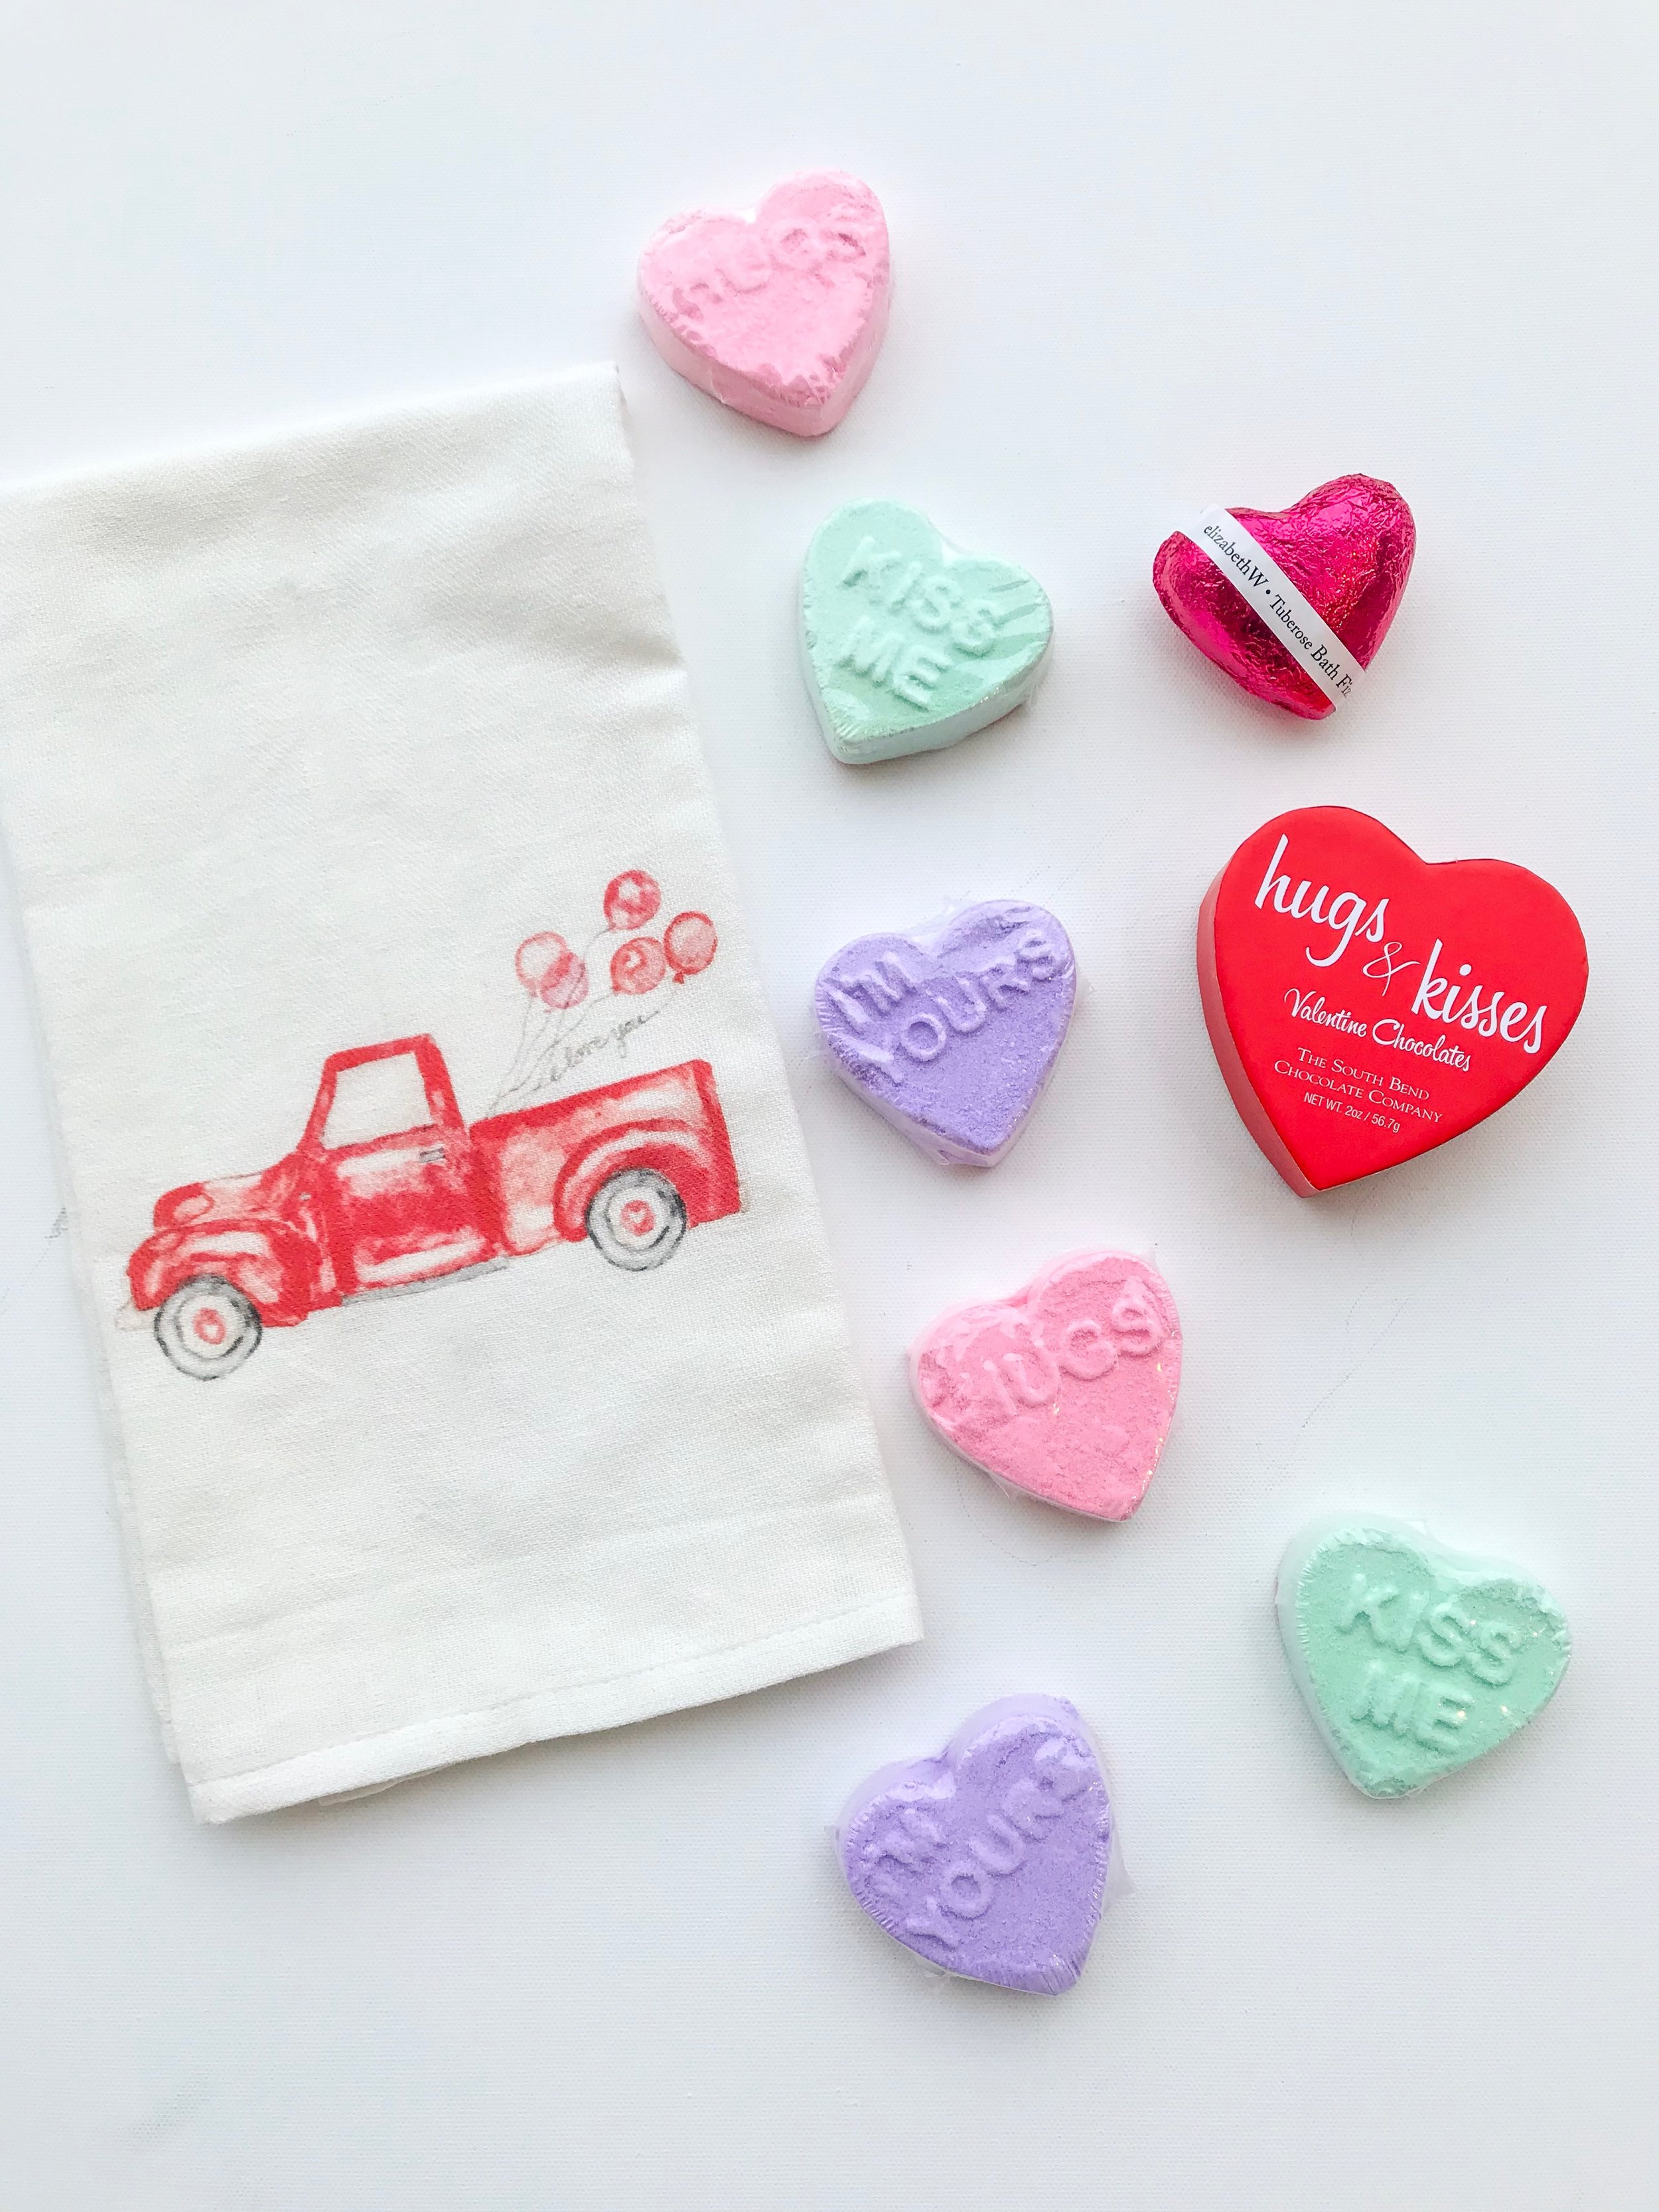 I captured this photo of some of their featured valentine's day products!